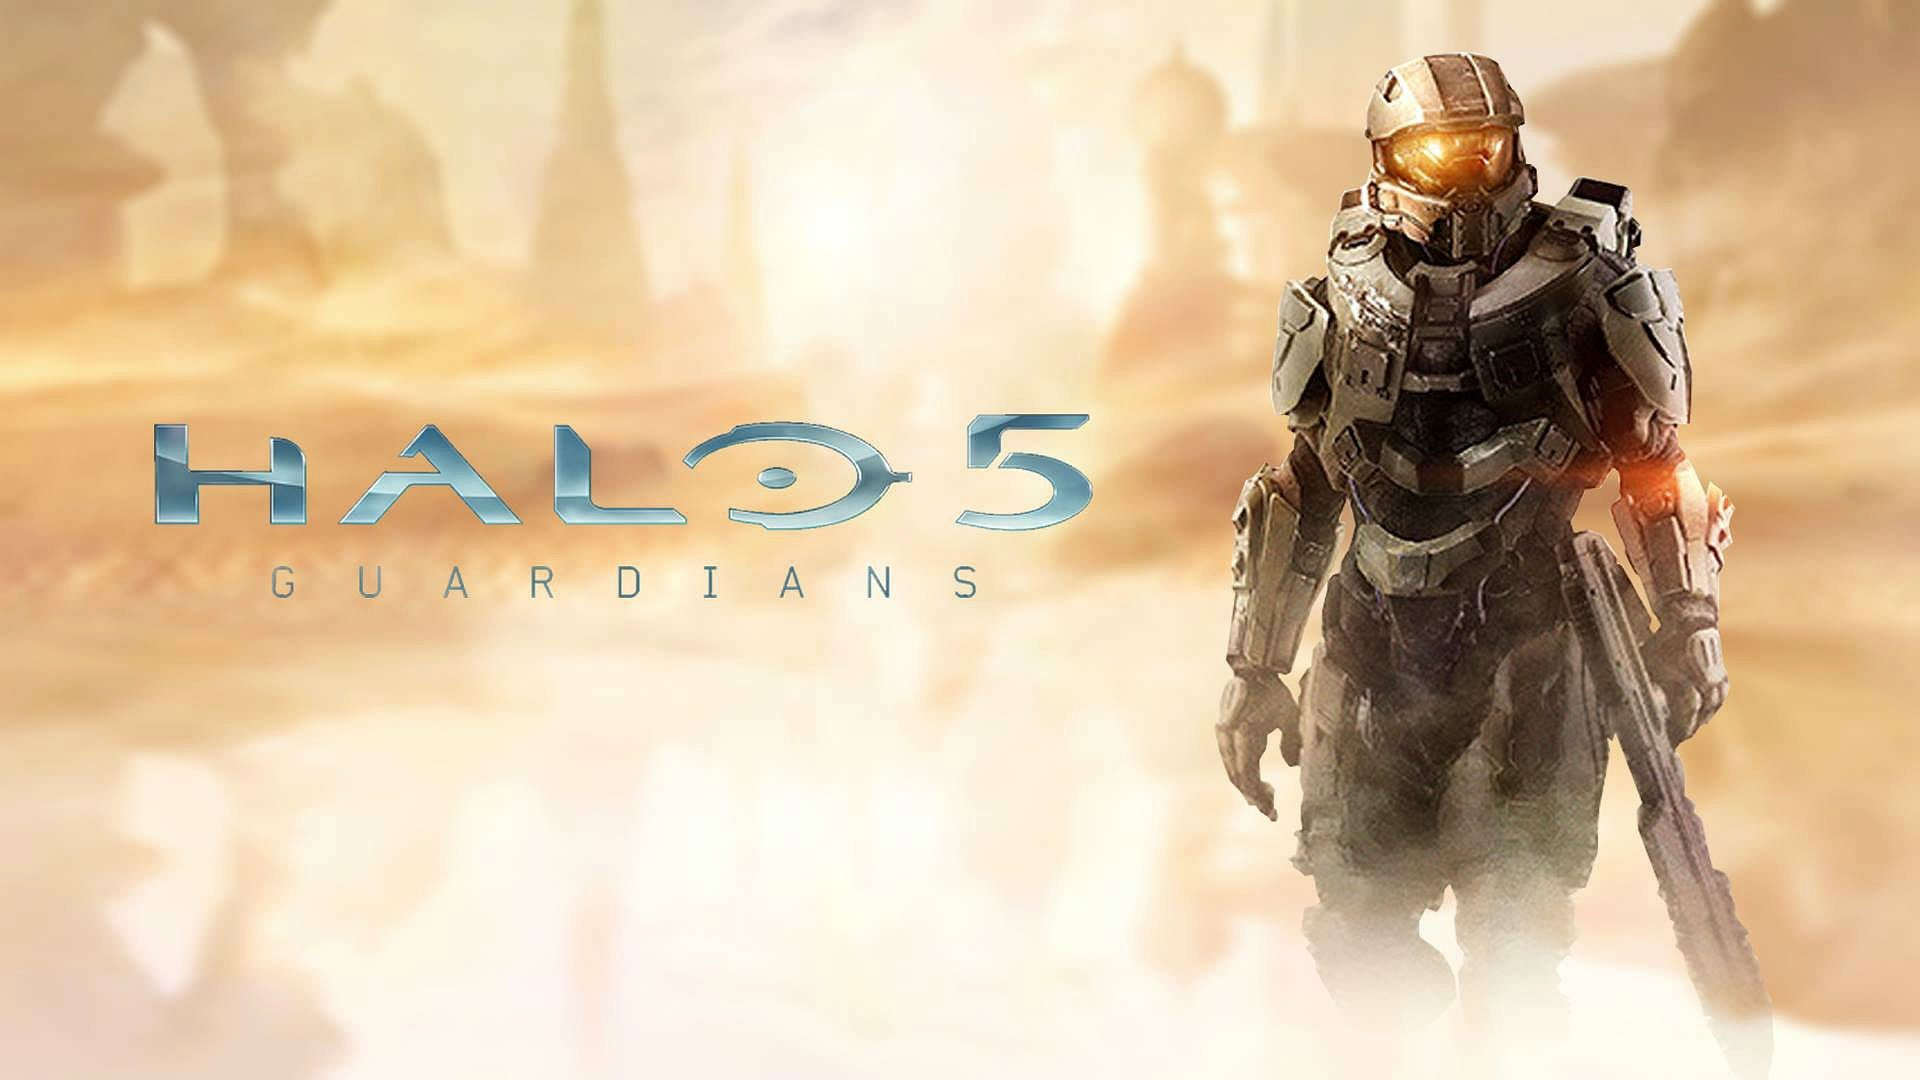 HALO 5 GUARDIANS shooter fps action fighting sci-fi warrior series war .